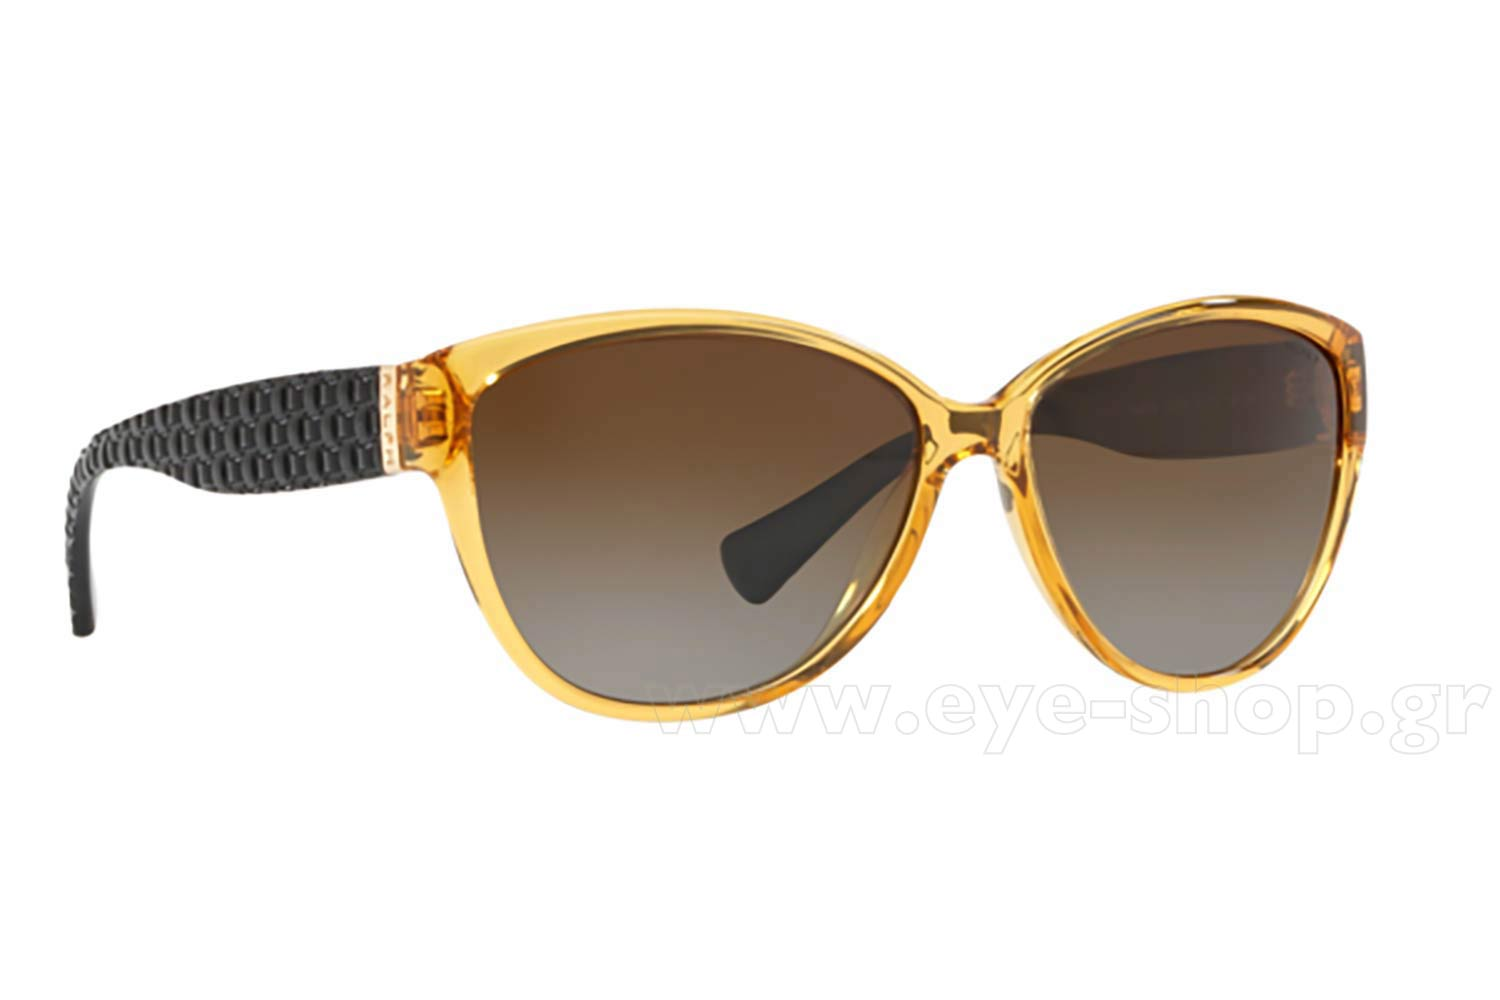 Γυαλιά Ralph By Ralph Lauren 5176 1031T5 polarized